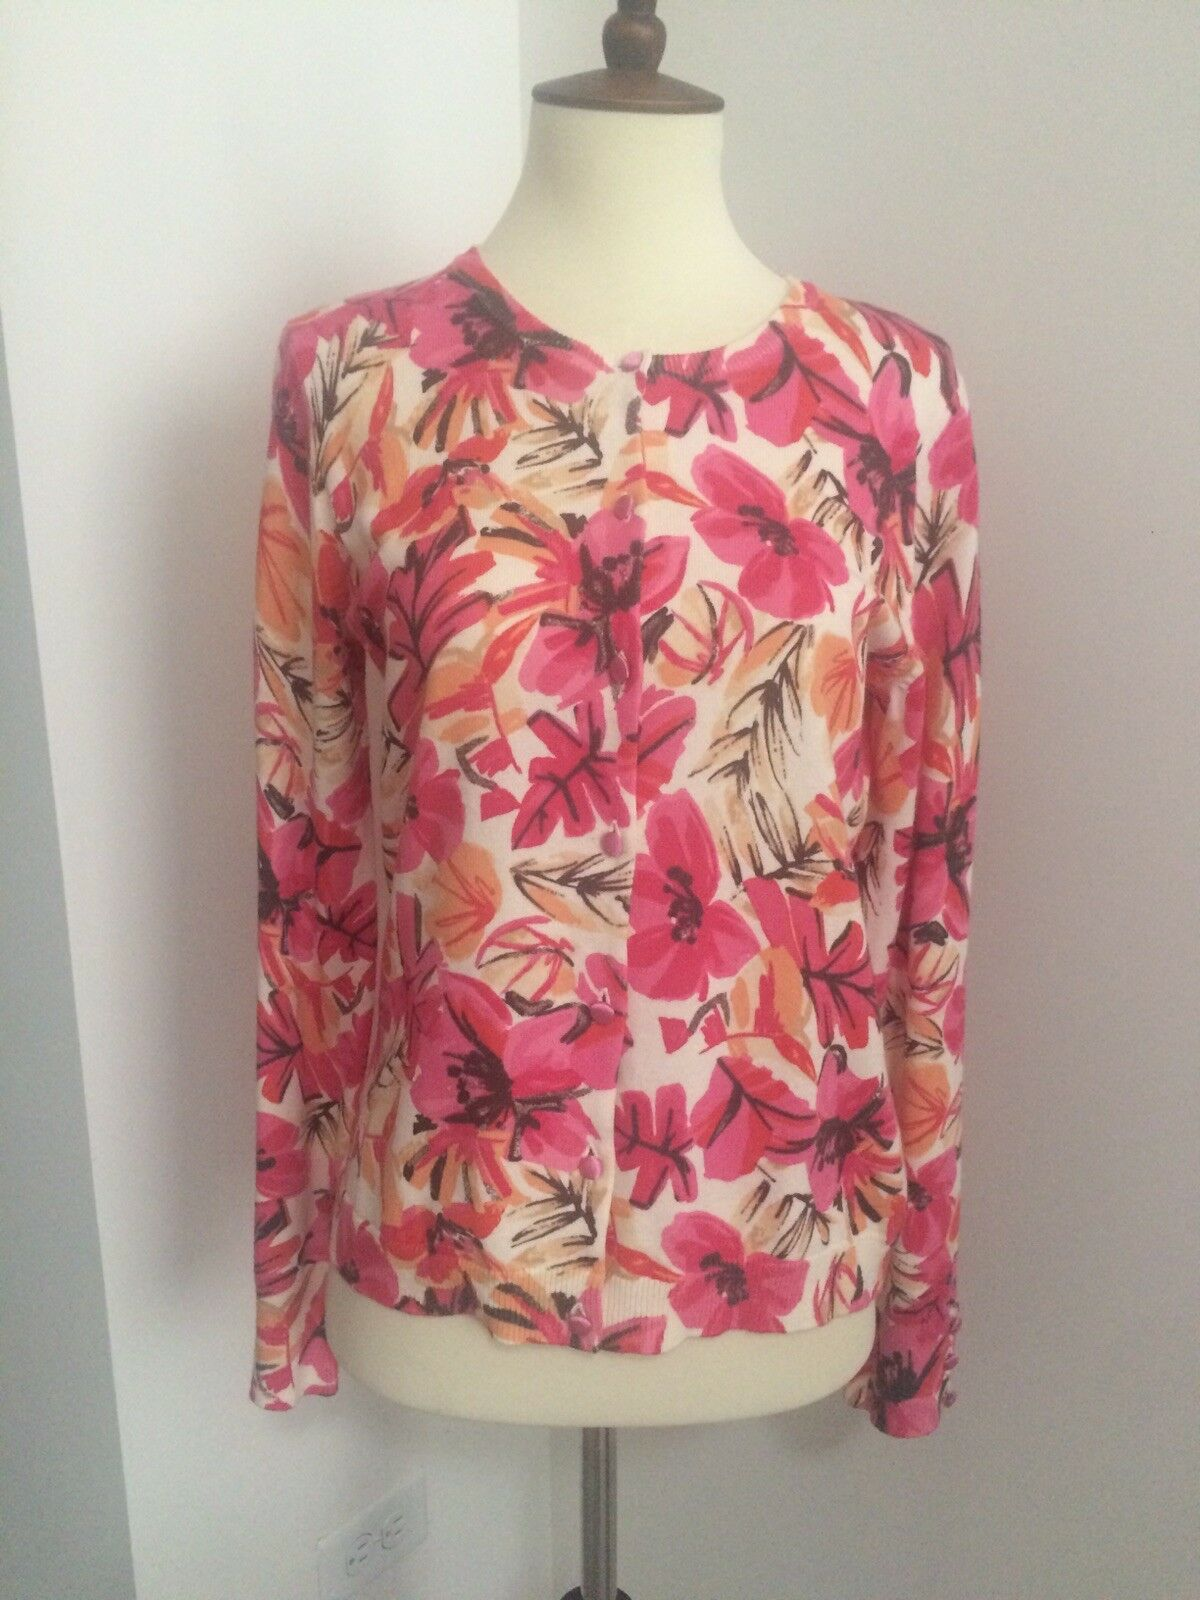 NWT Sigrid Olsen Long Sleeve Pink Floral Cardigan Sweater Cotton XS MSRP  139